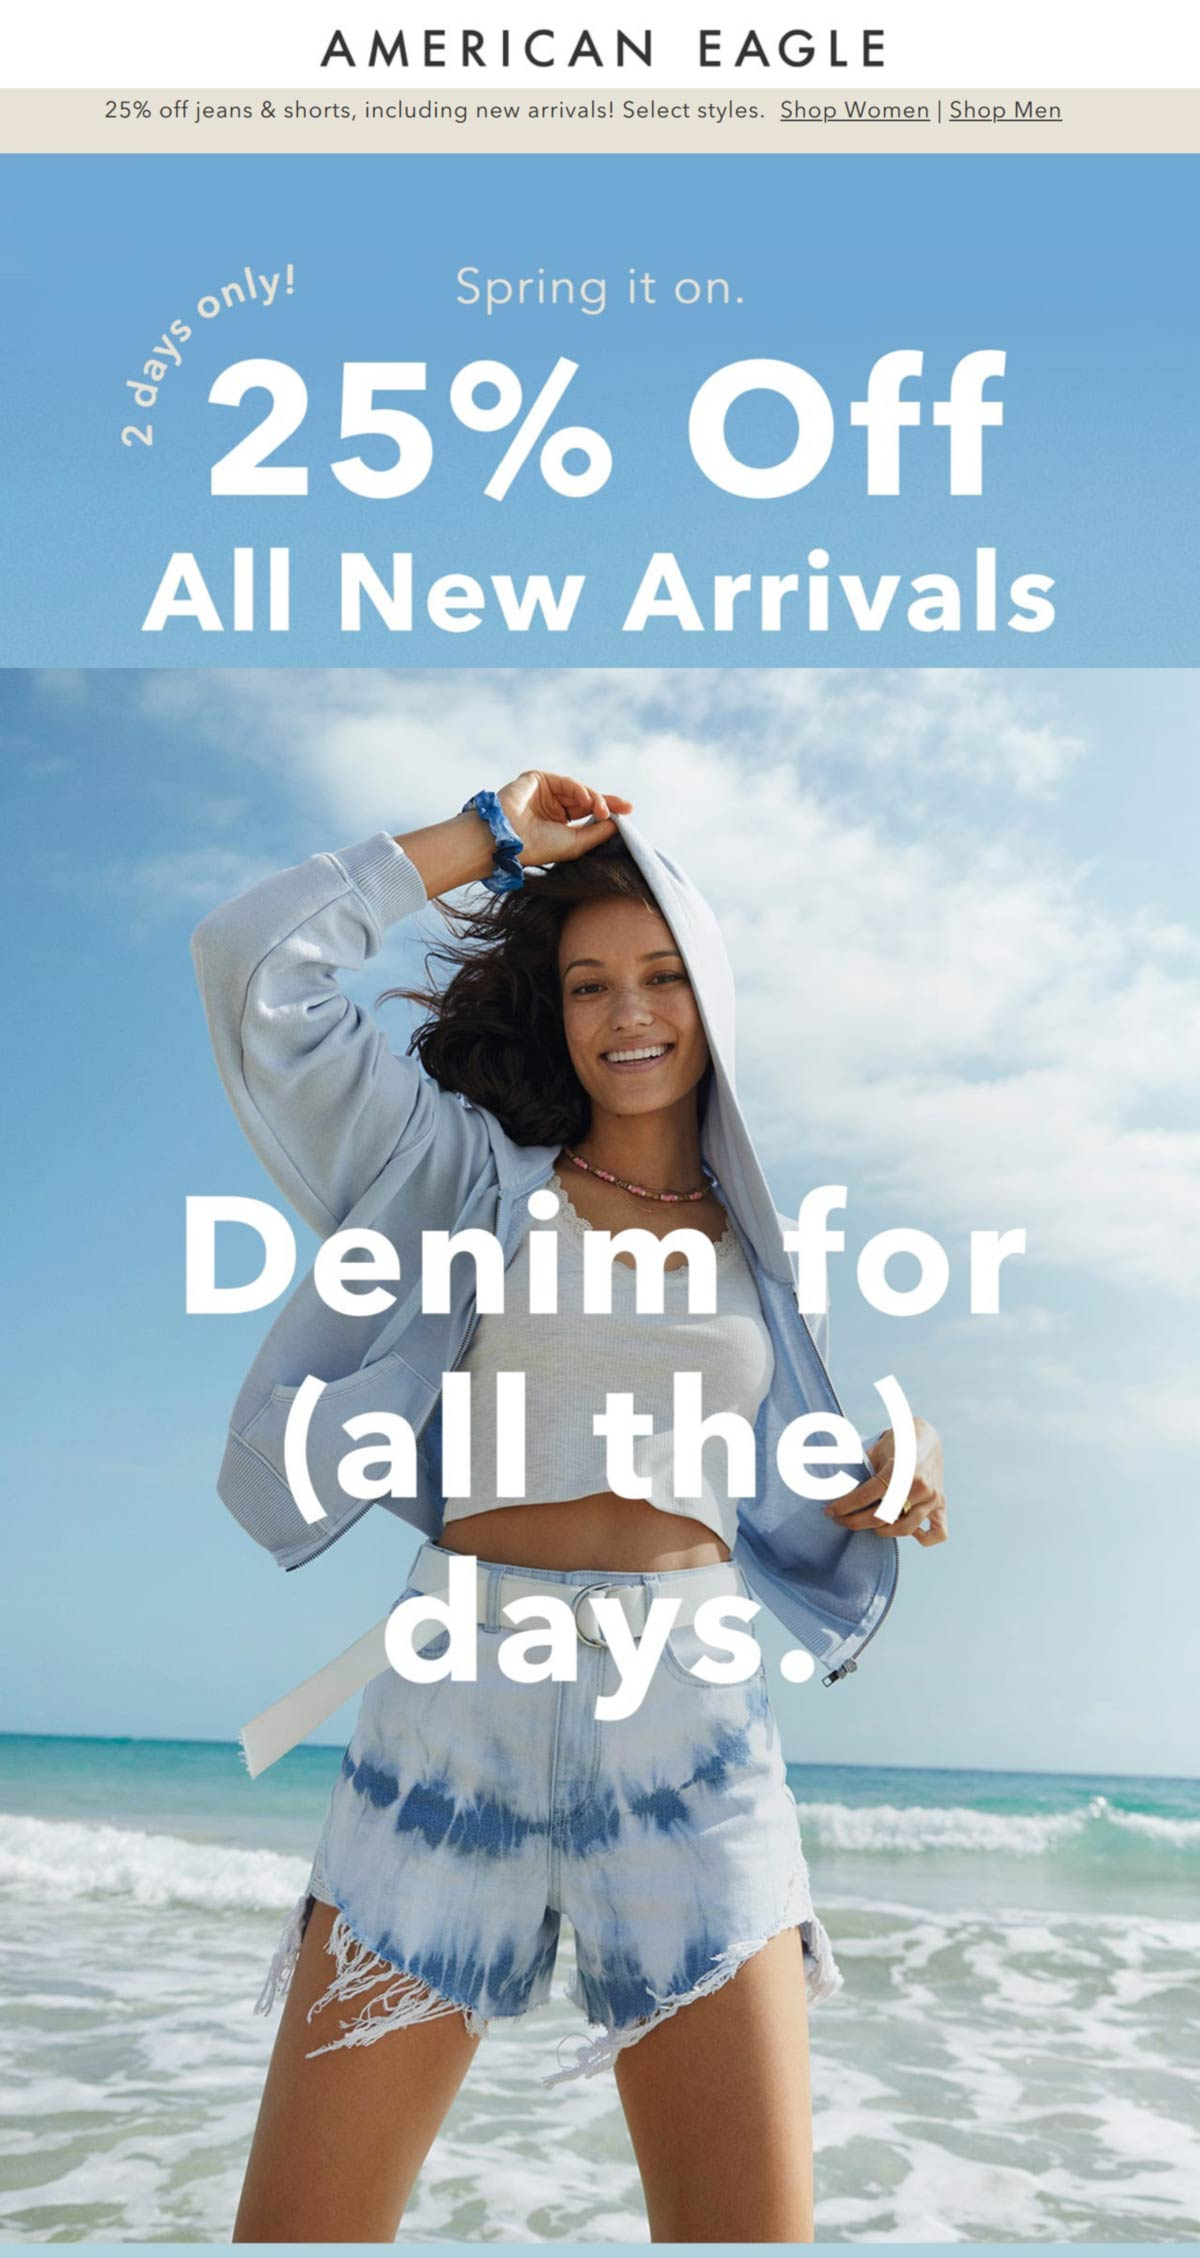 American Eagle stores Coupon  25% off jeans & new arrivals at American Eagle, ditto online #americaneagle